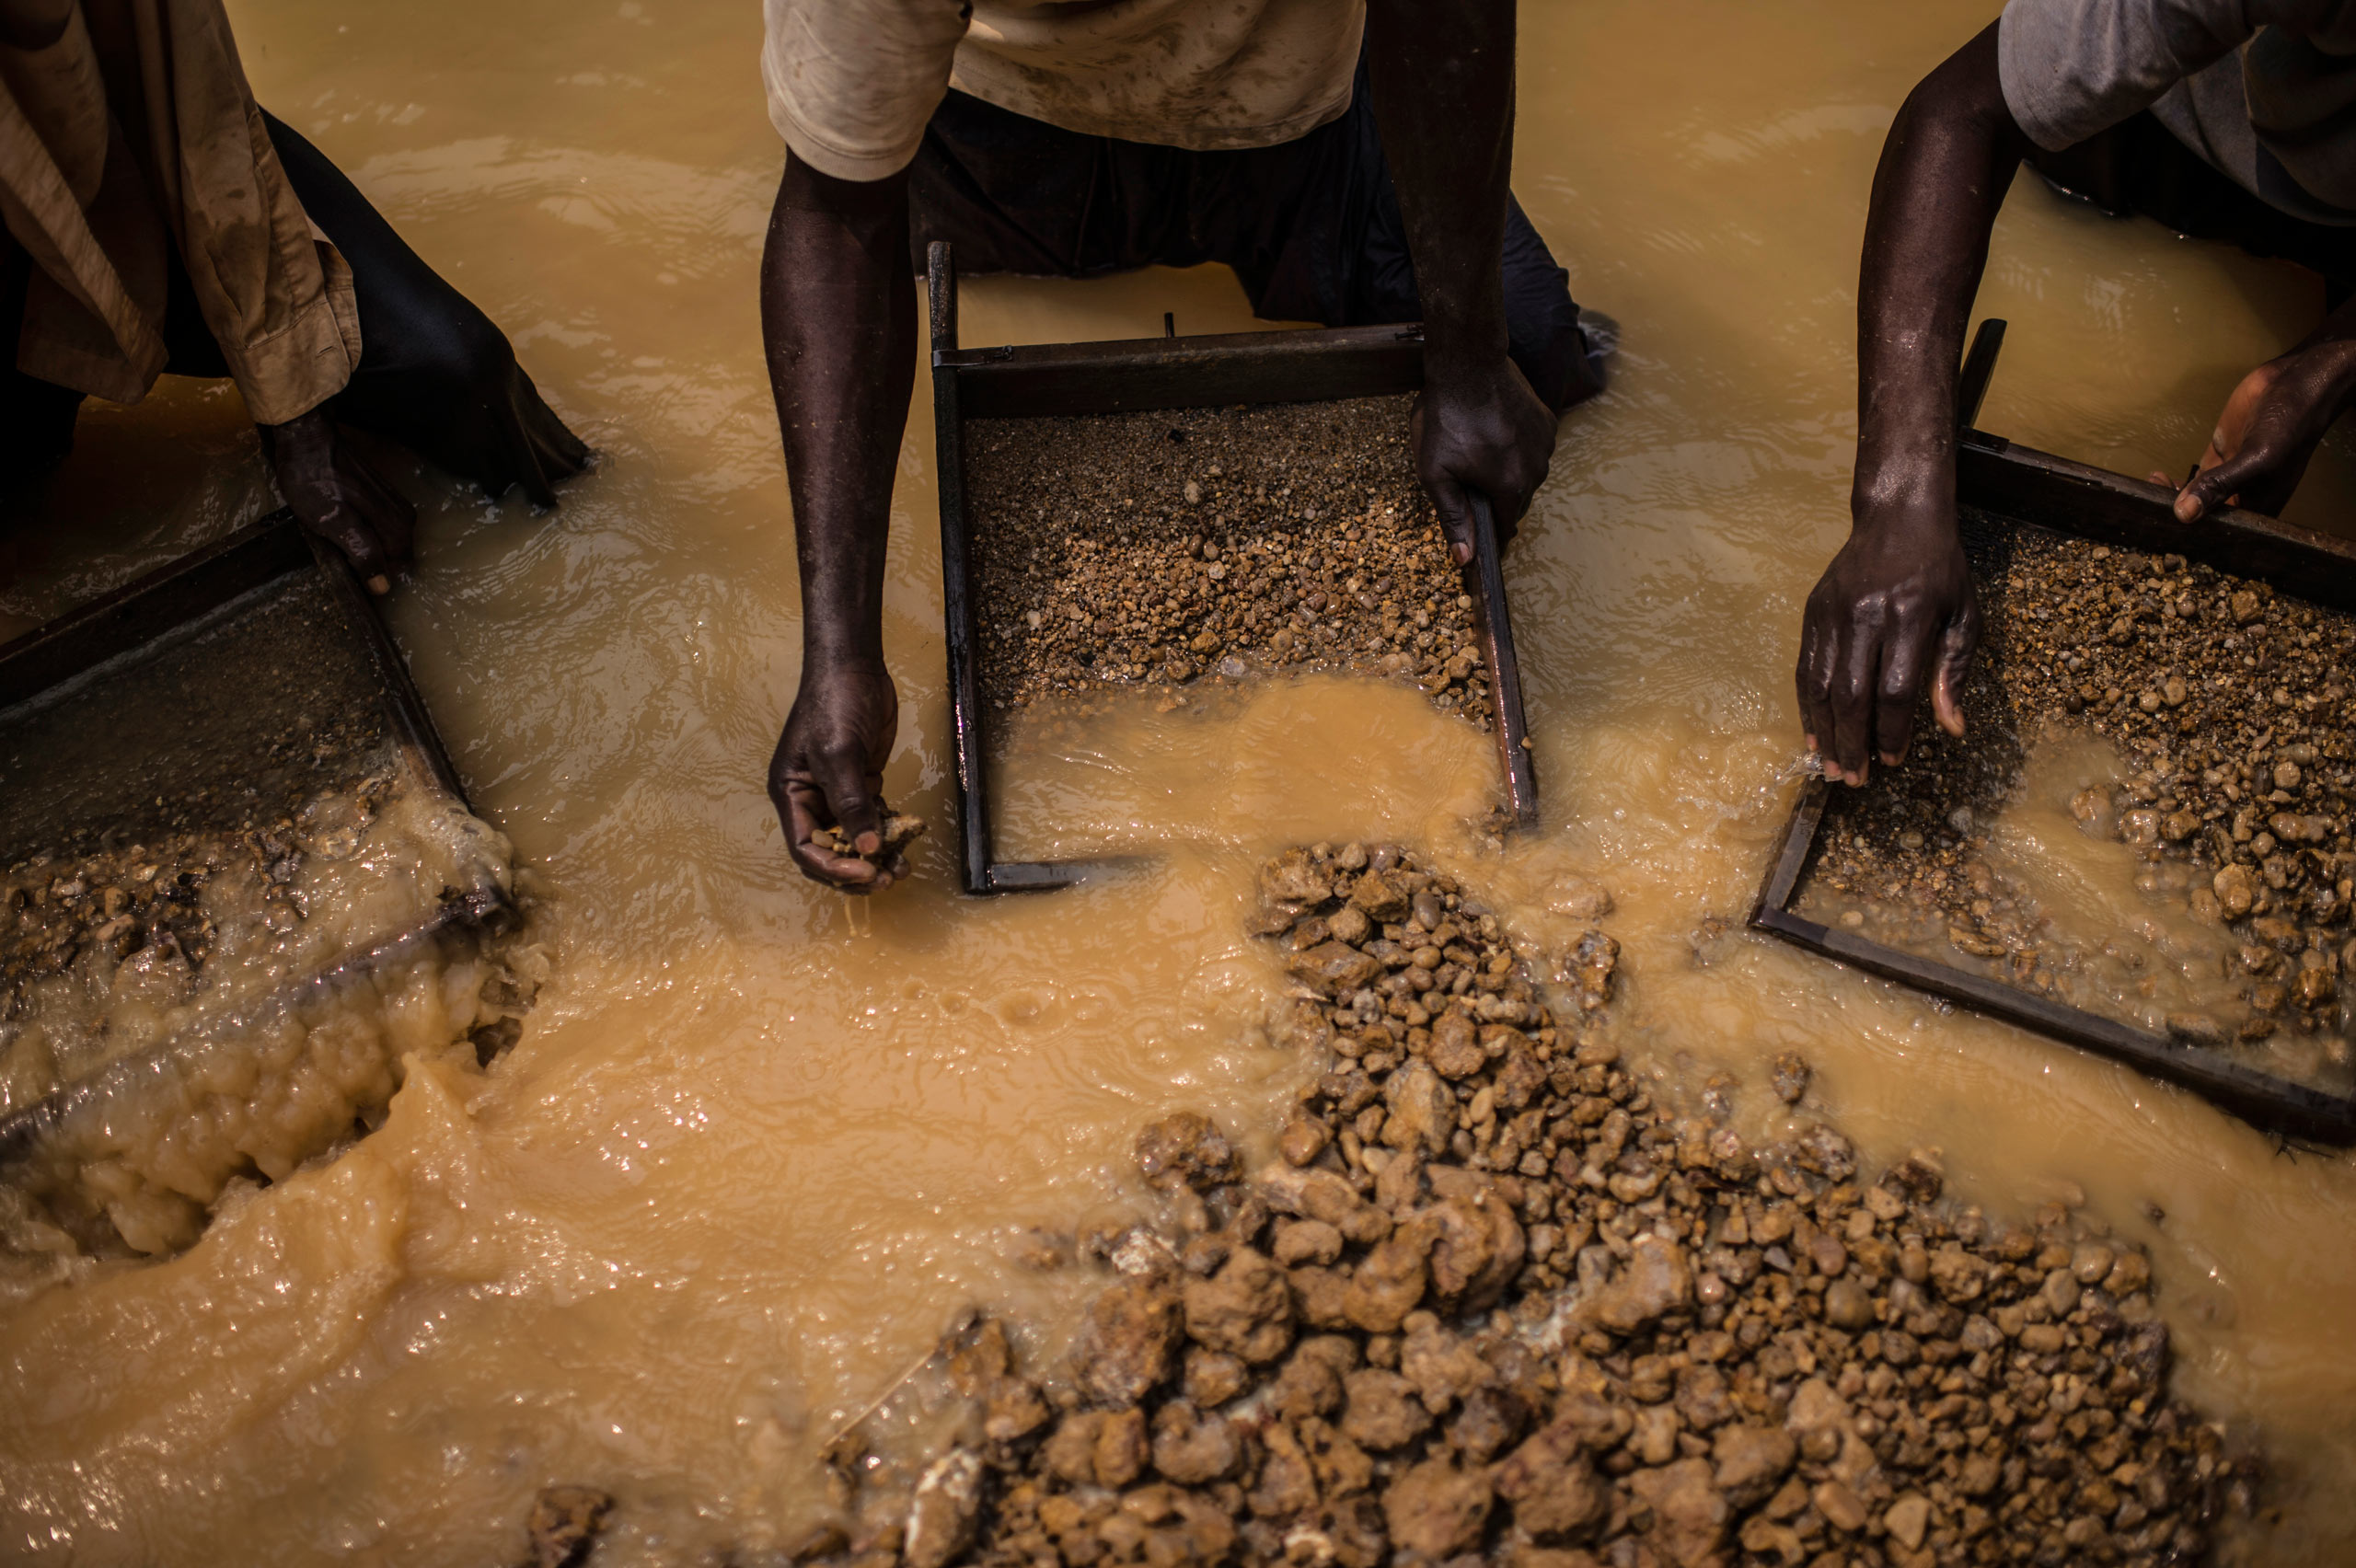 Congolese workers search for rough diamonds in a mine  in the southwest region in the Democratic Republic of Congo. Aug. 9, 2015.